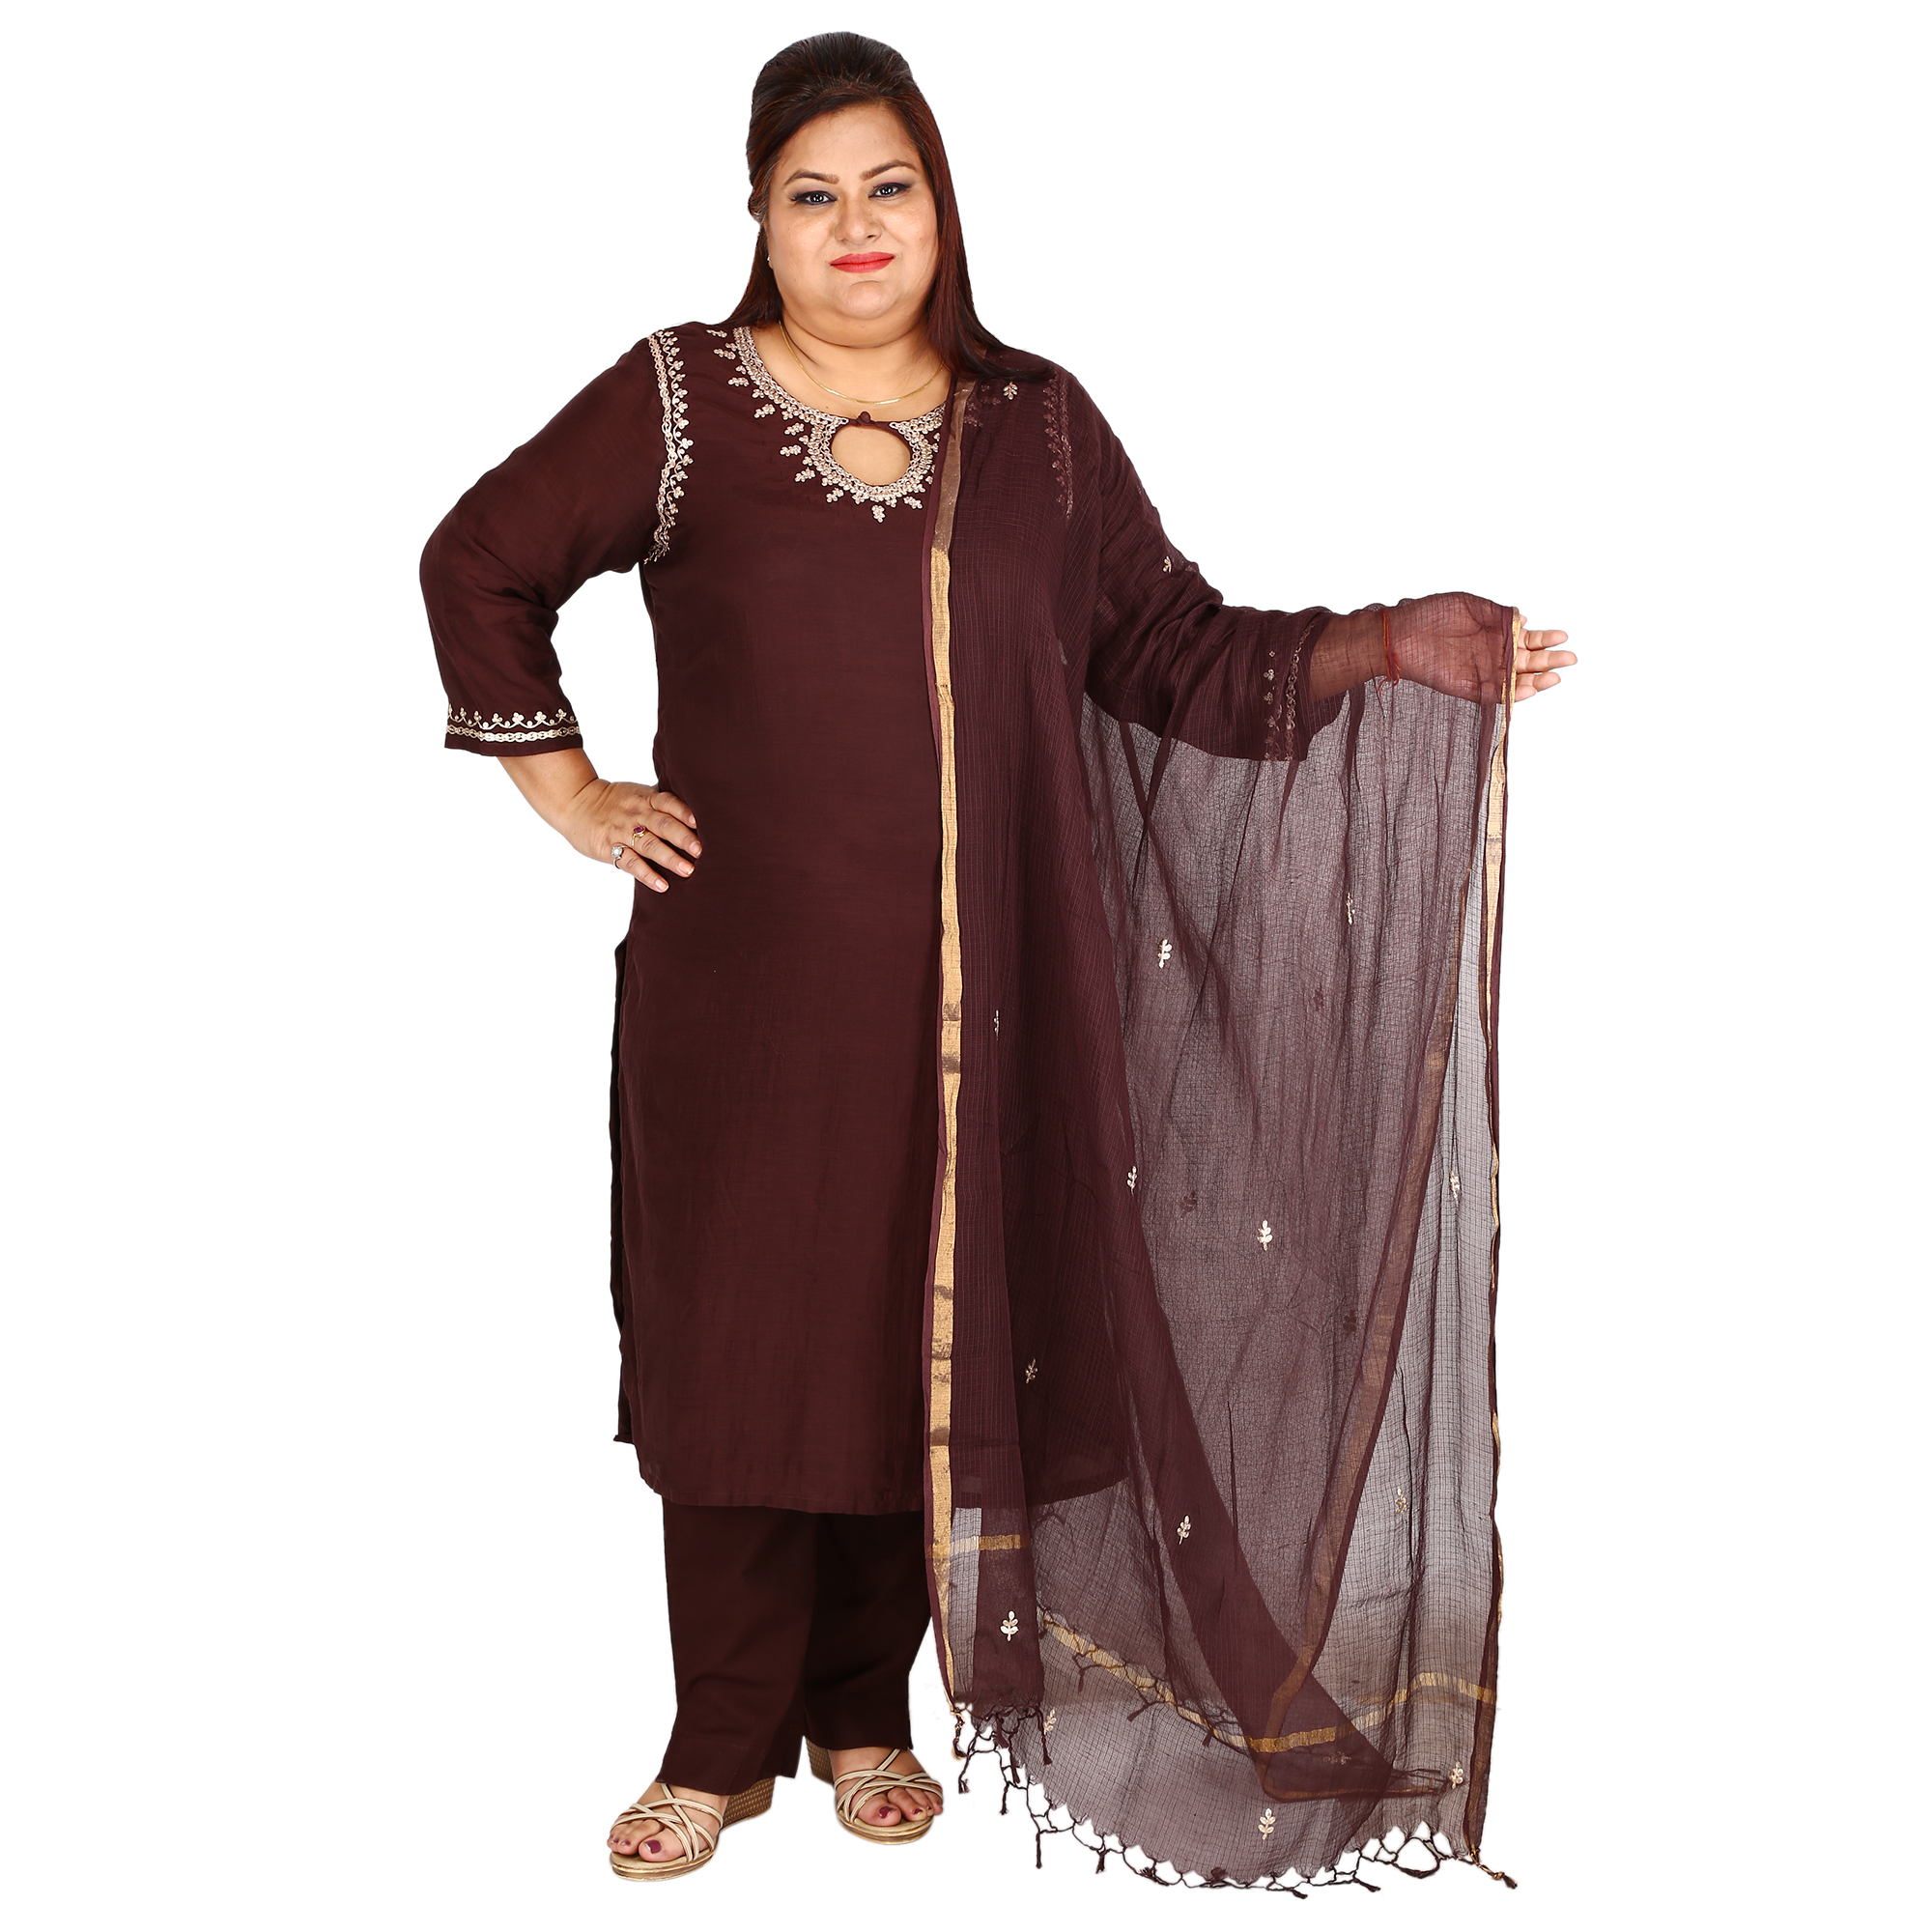 936888d20f5 Damyantii Plus Size Women s Solid Brown Cotton Silk Kurta and Duppatta in  Size 2XL